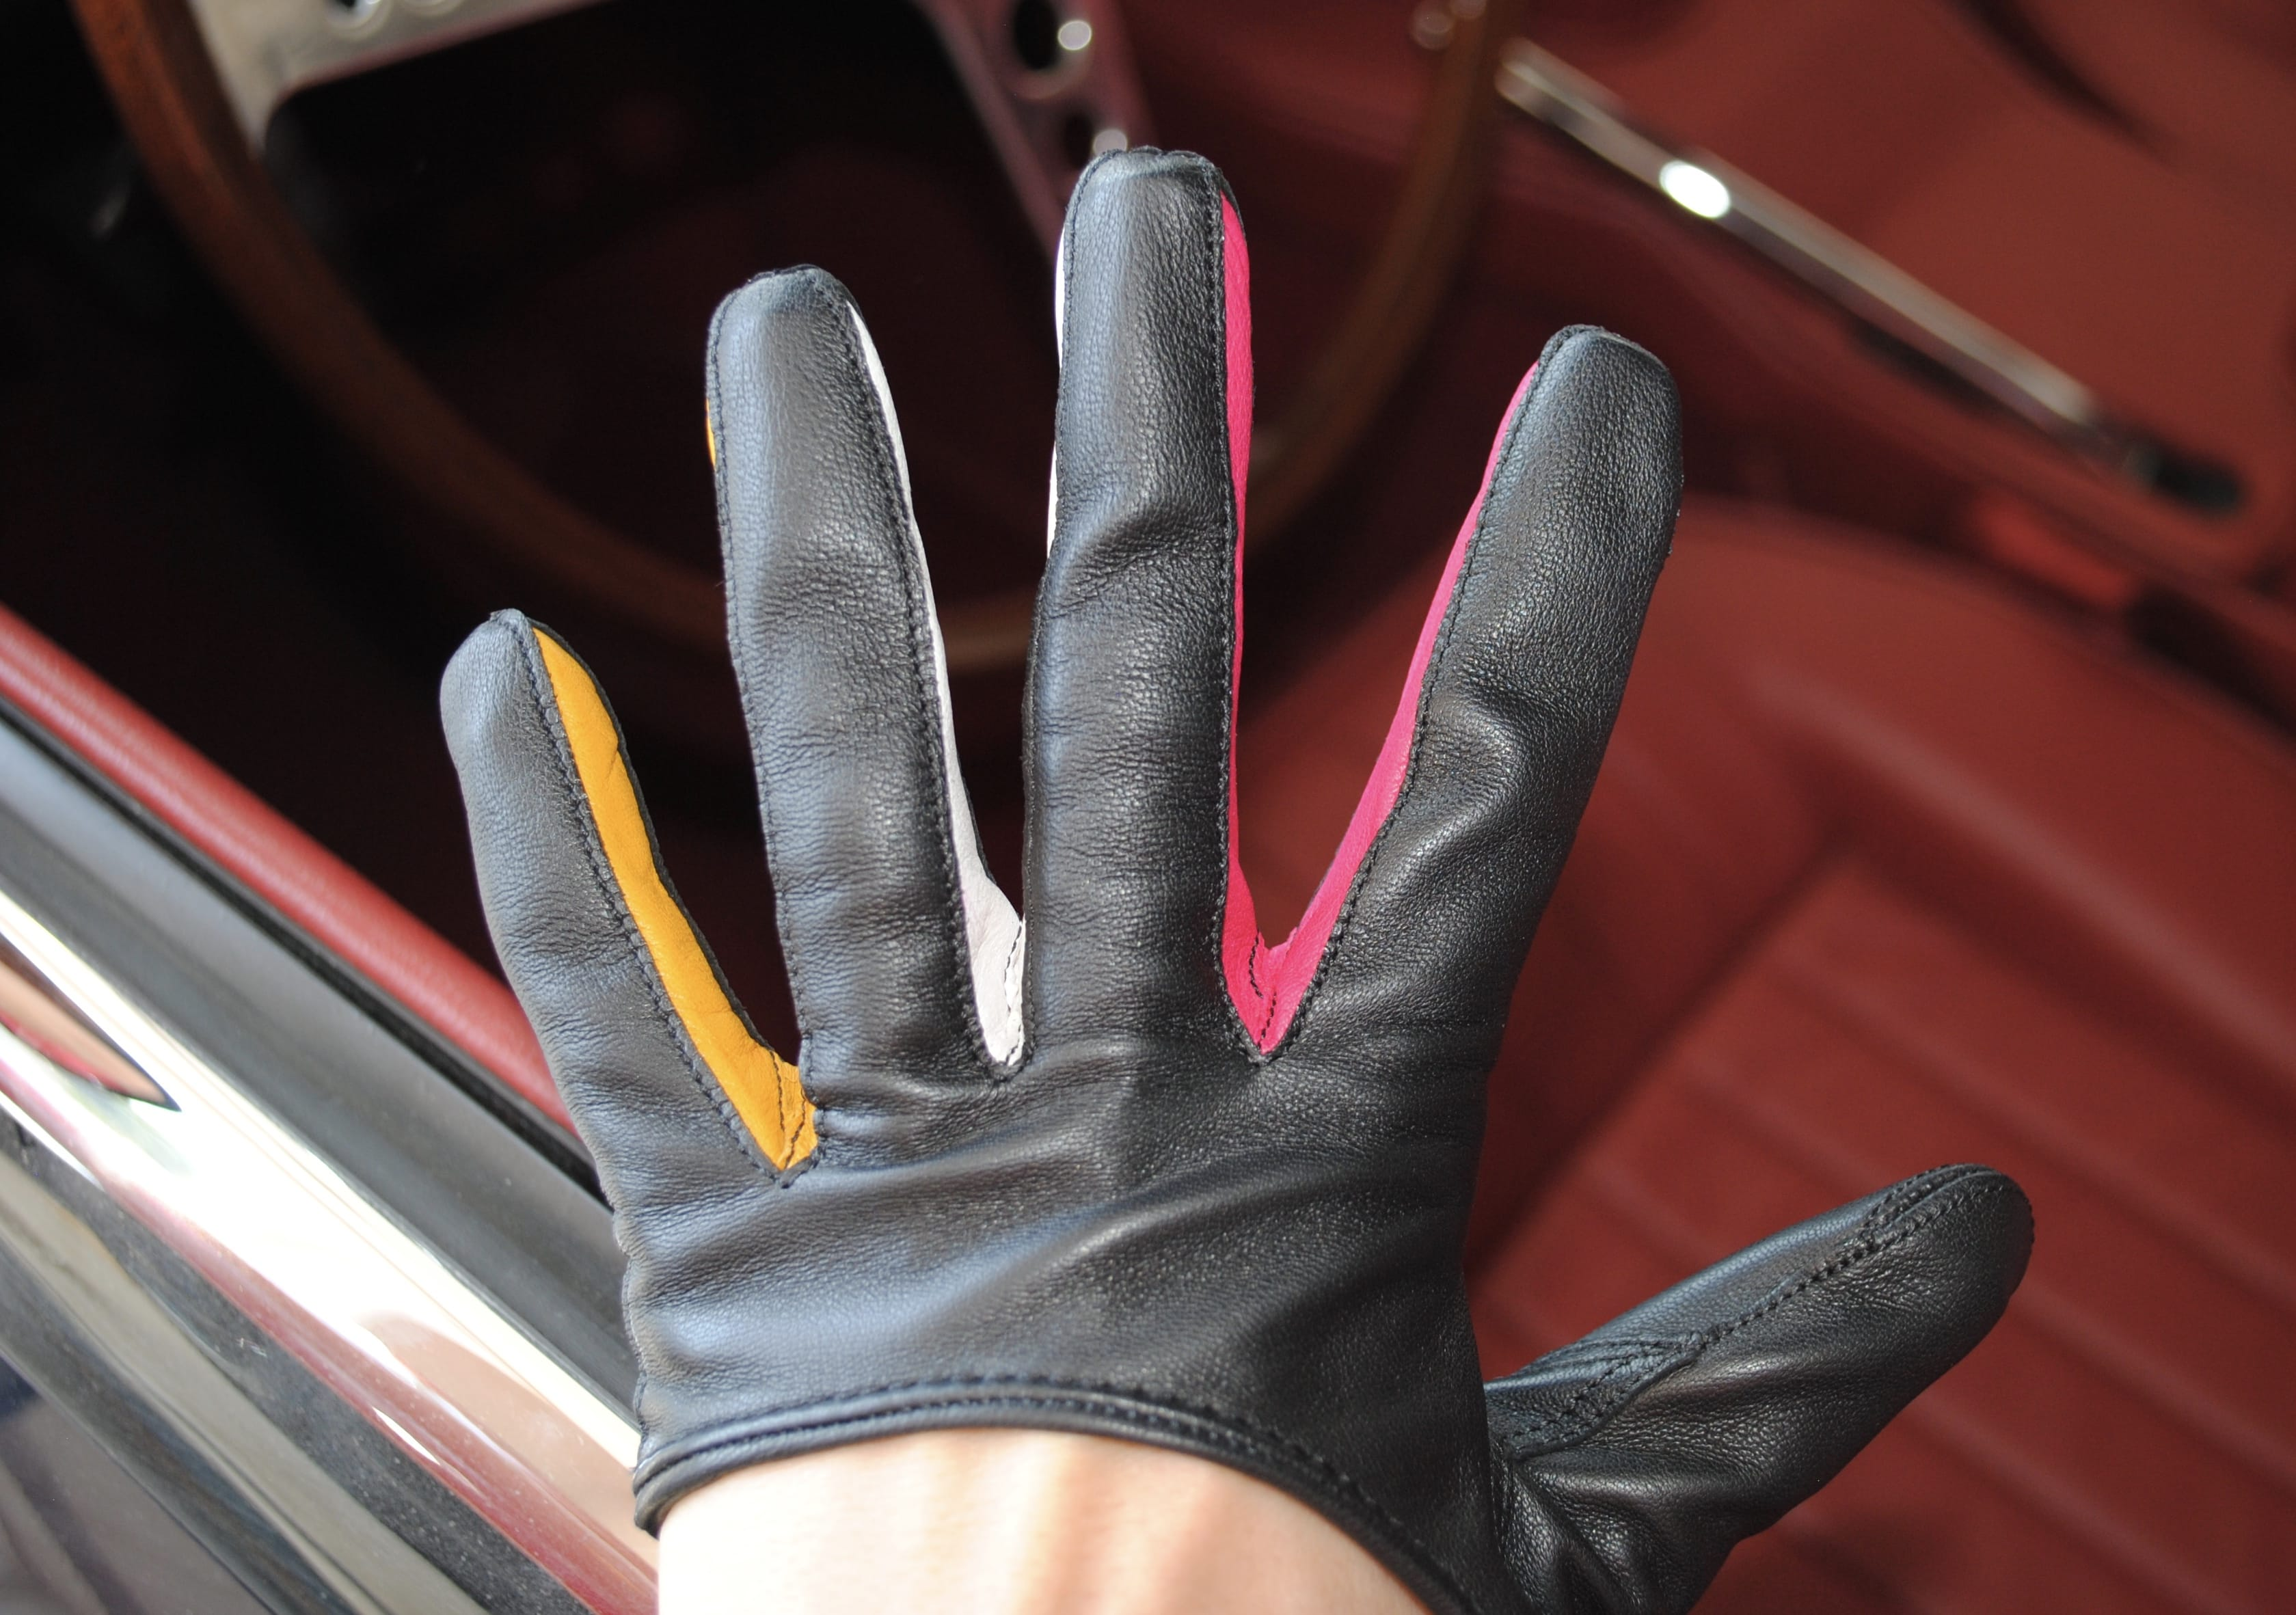 Leather driving gloves from drive - I Ve Always Had My Tan Leather Ones To Match My Interior Leather Not Sure Where They Are From But They Are Perfect For The Summer Because These Gloves Are